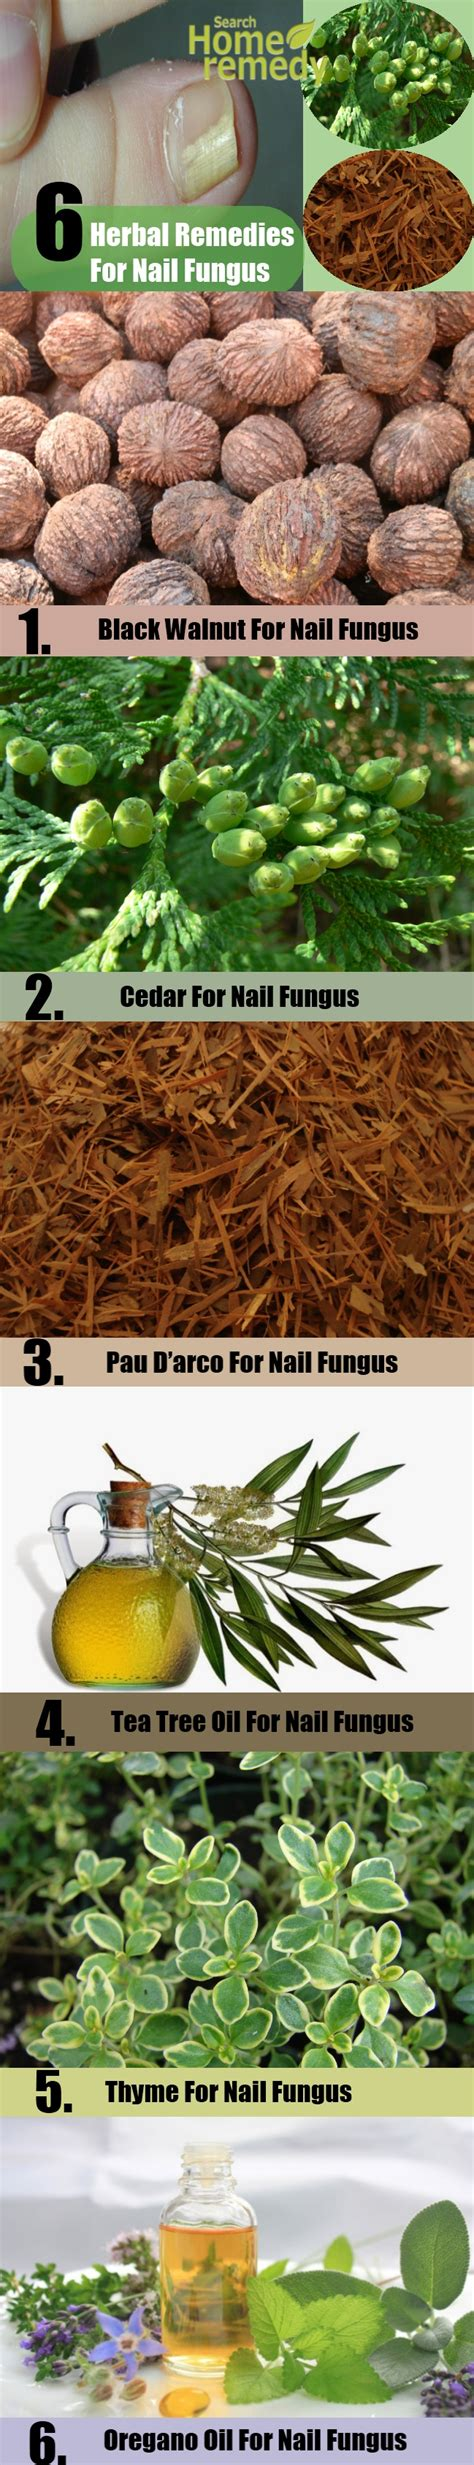 herbal supplement for fungus picture 6